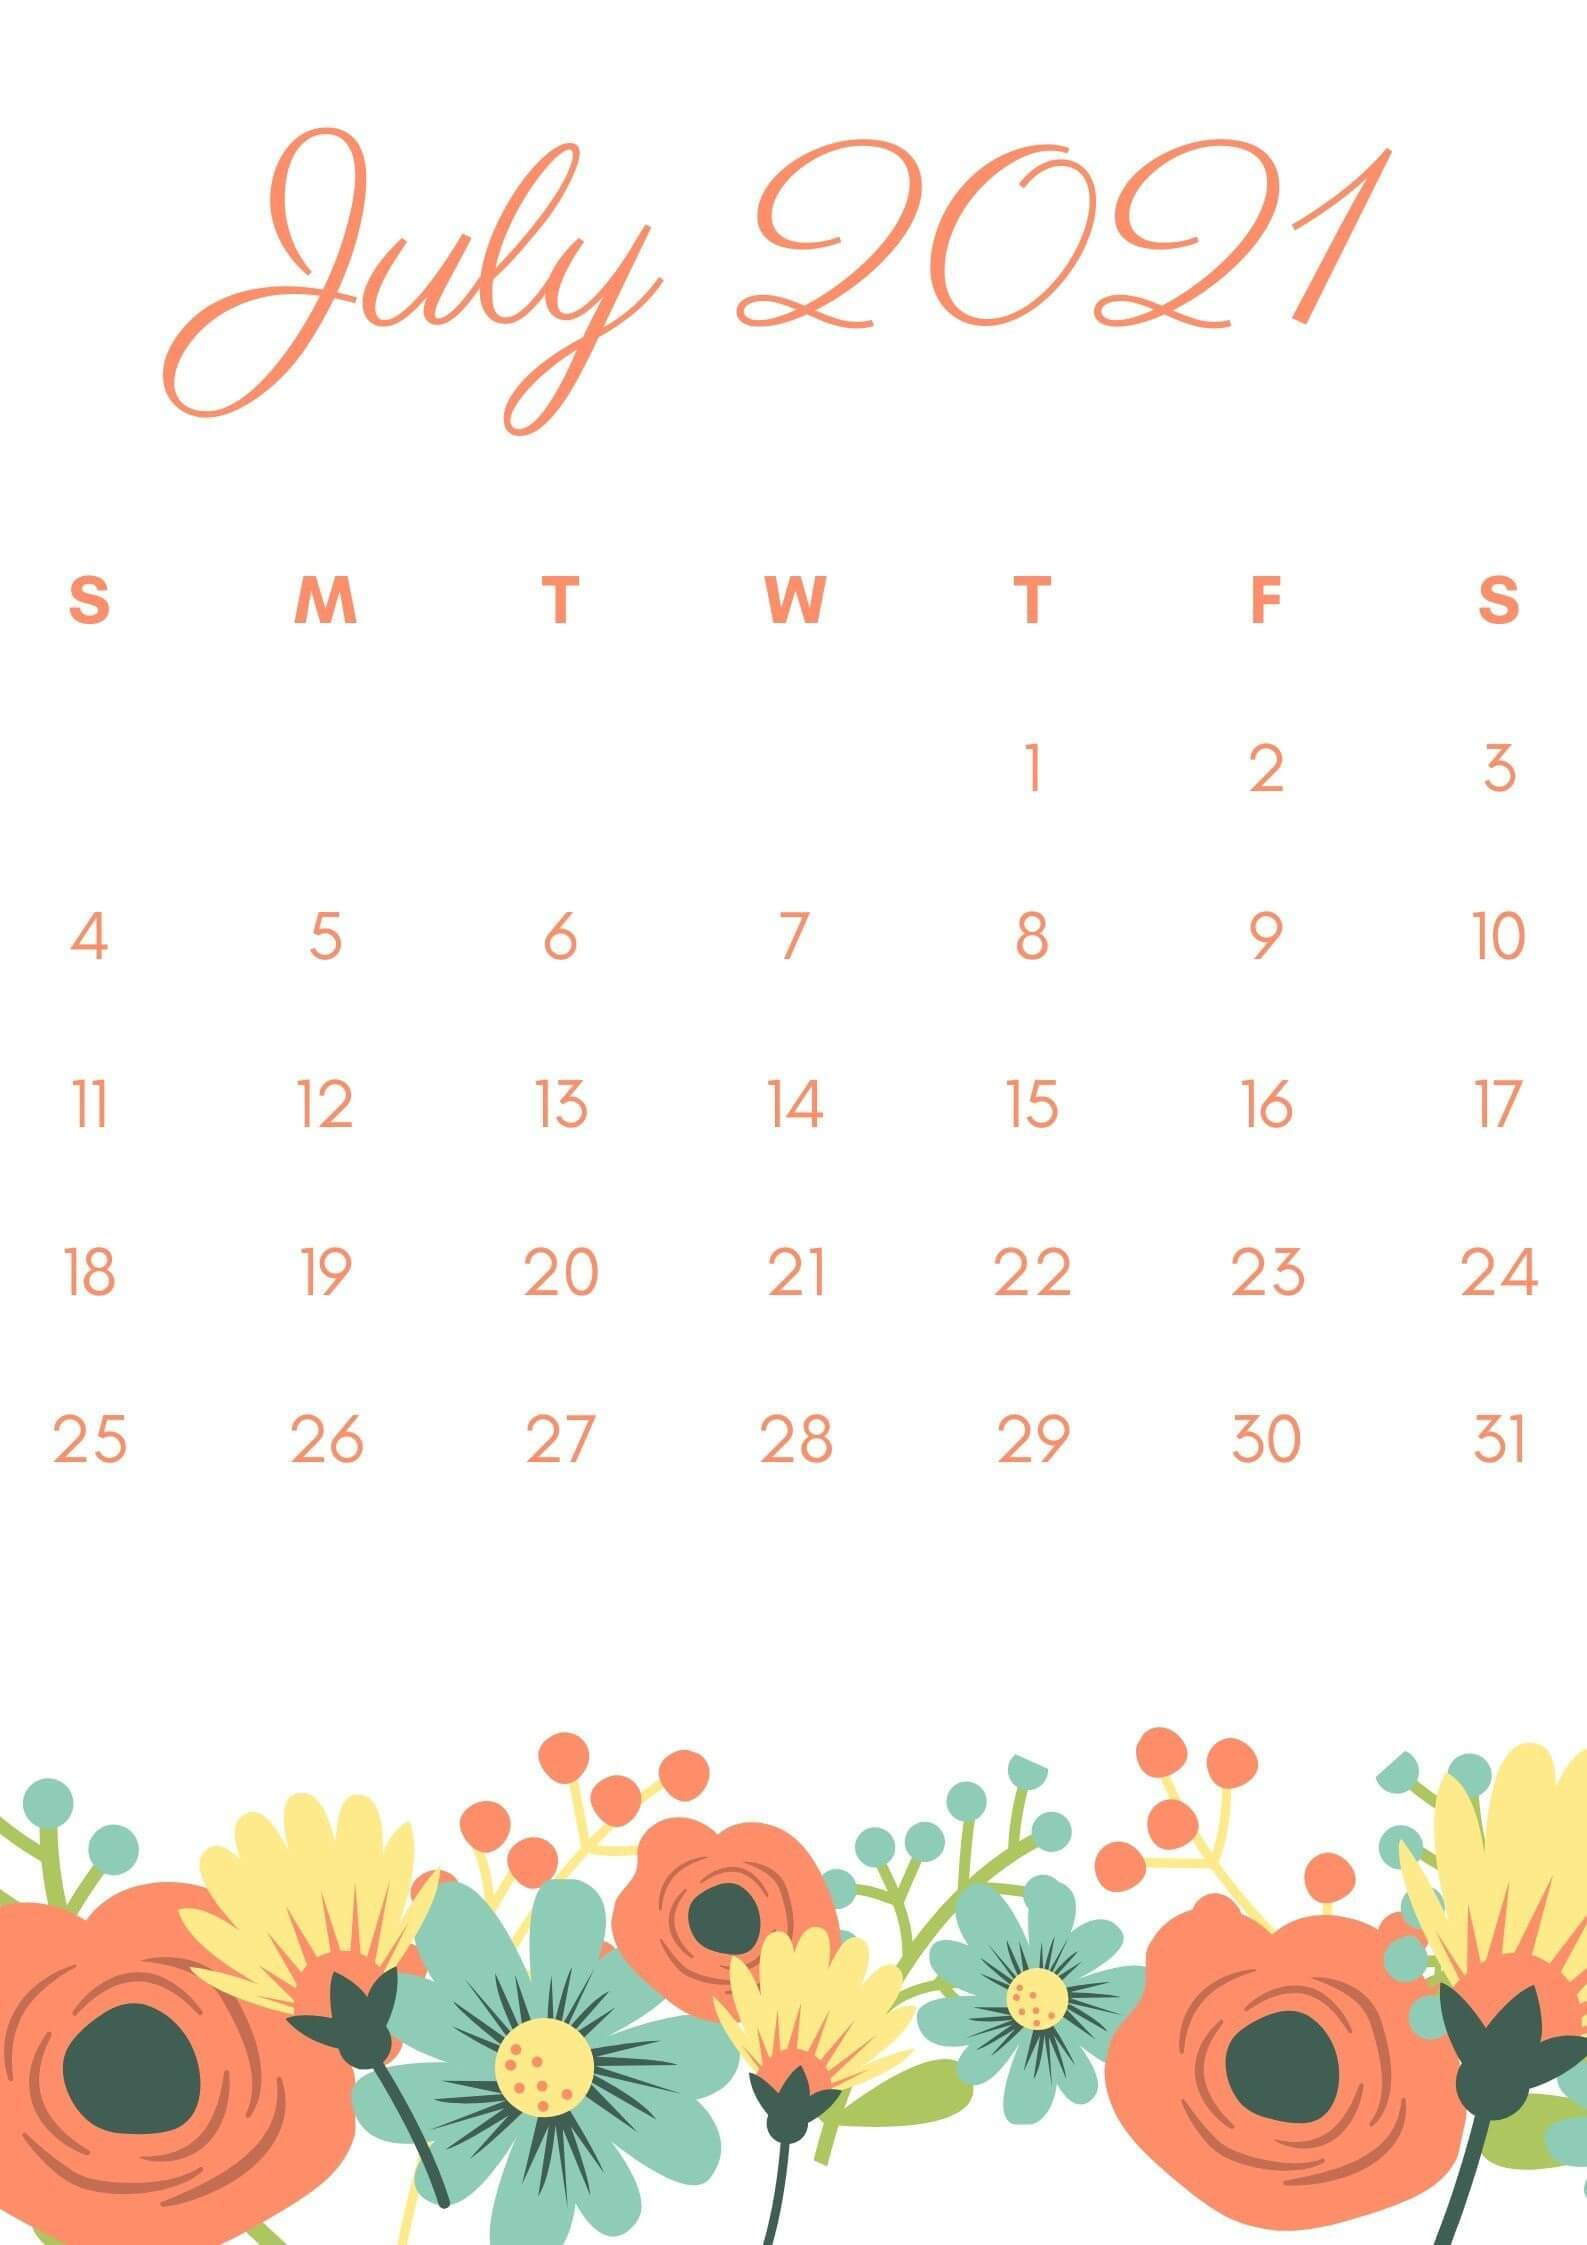 Floral July 2021 iPhone Calendar Wallpaper